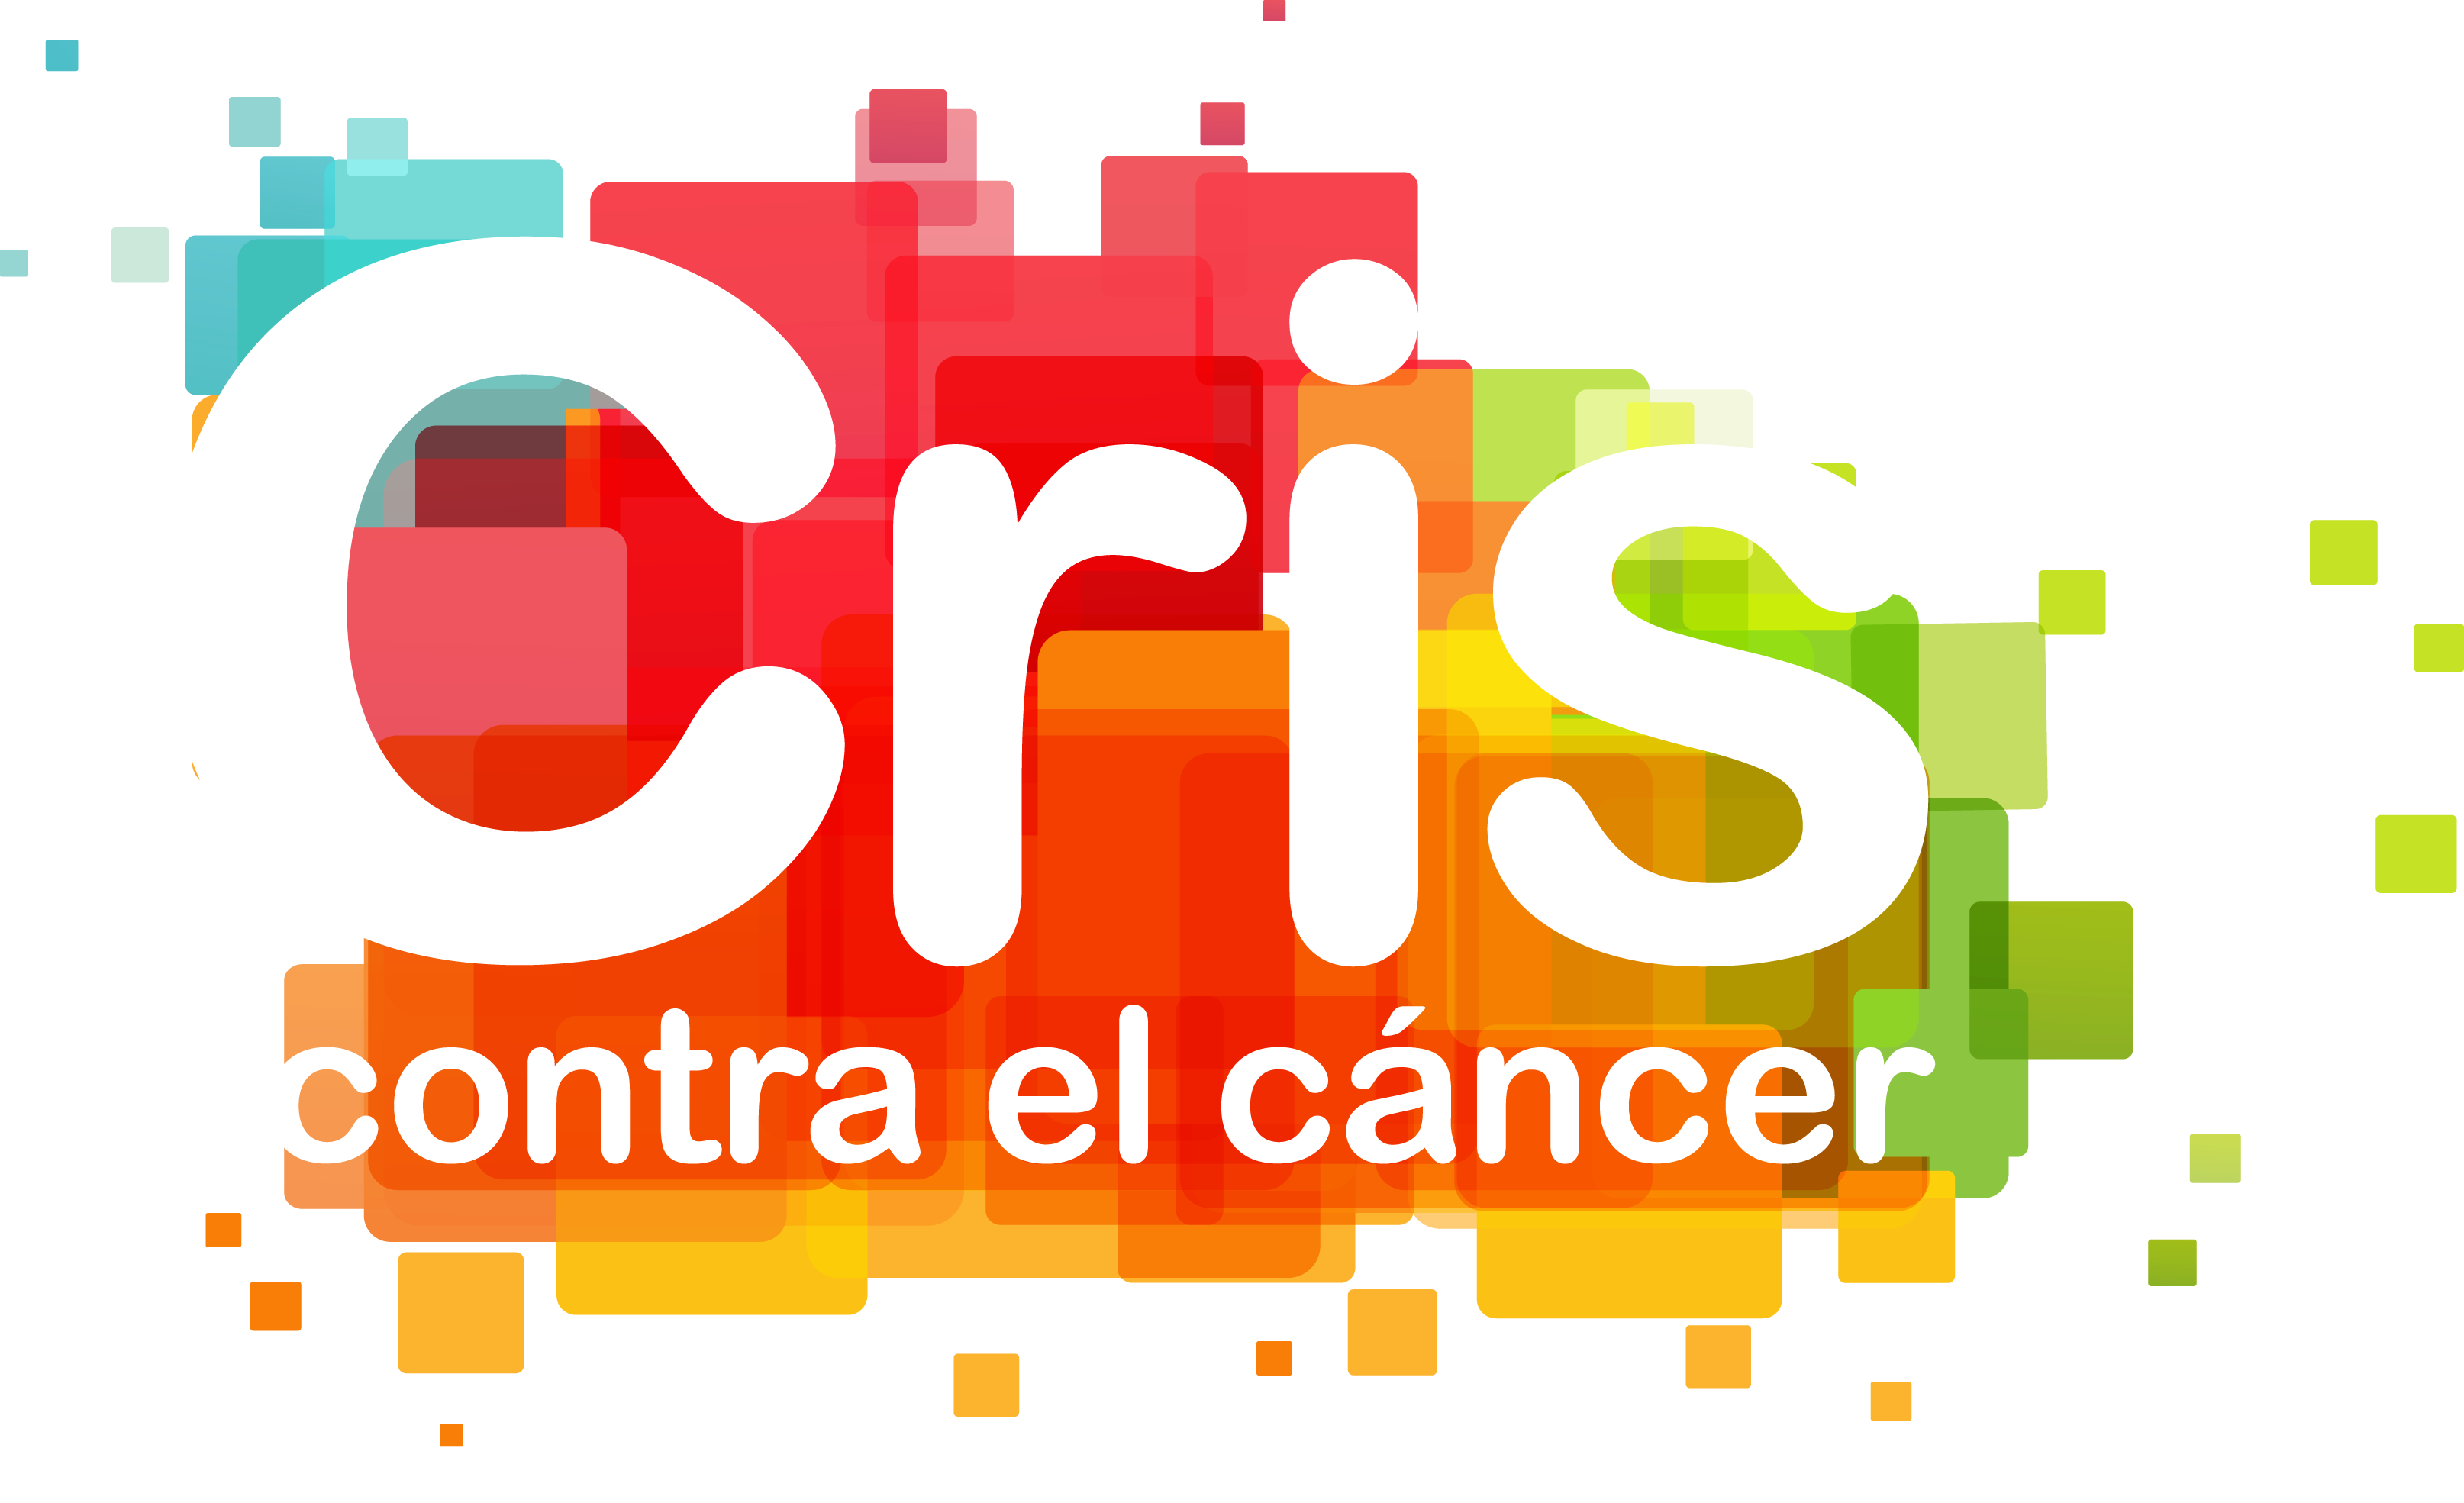 LOGO CRIS CANCER